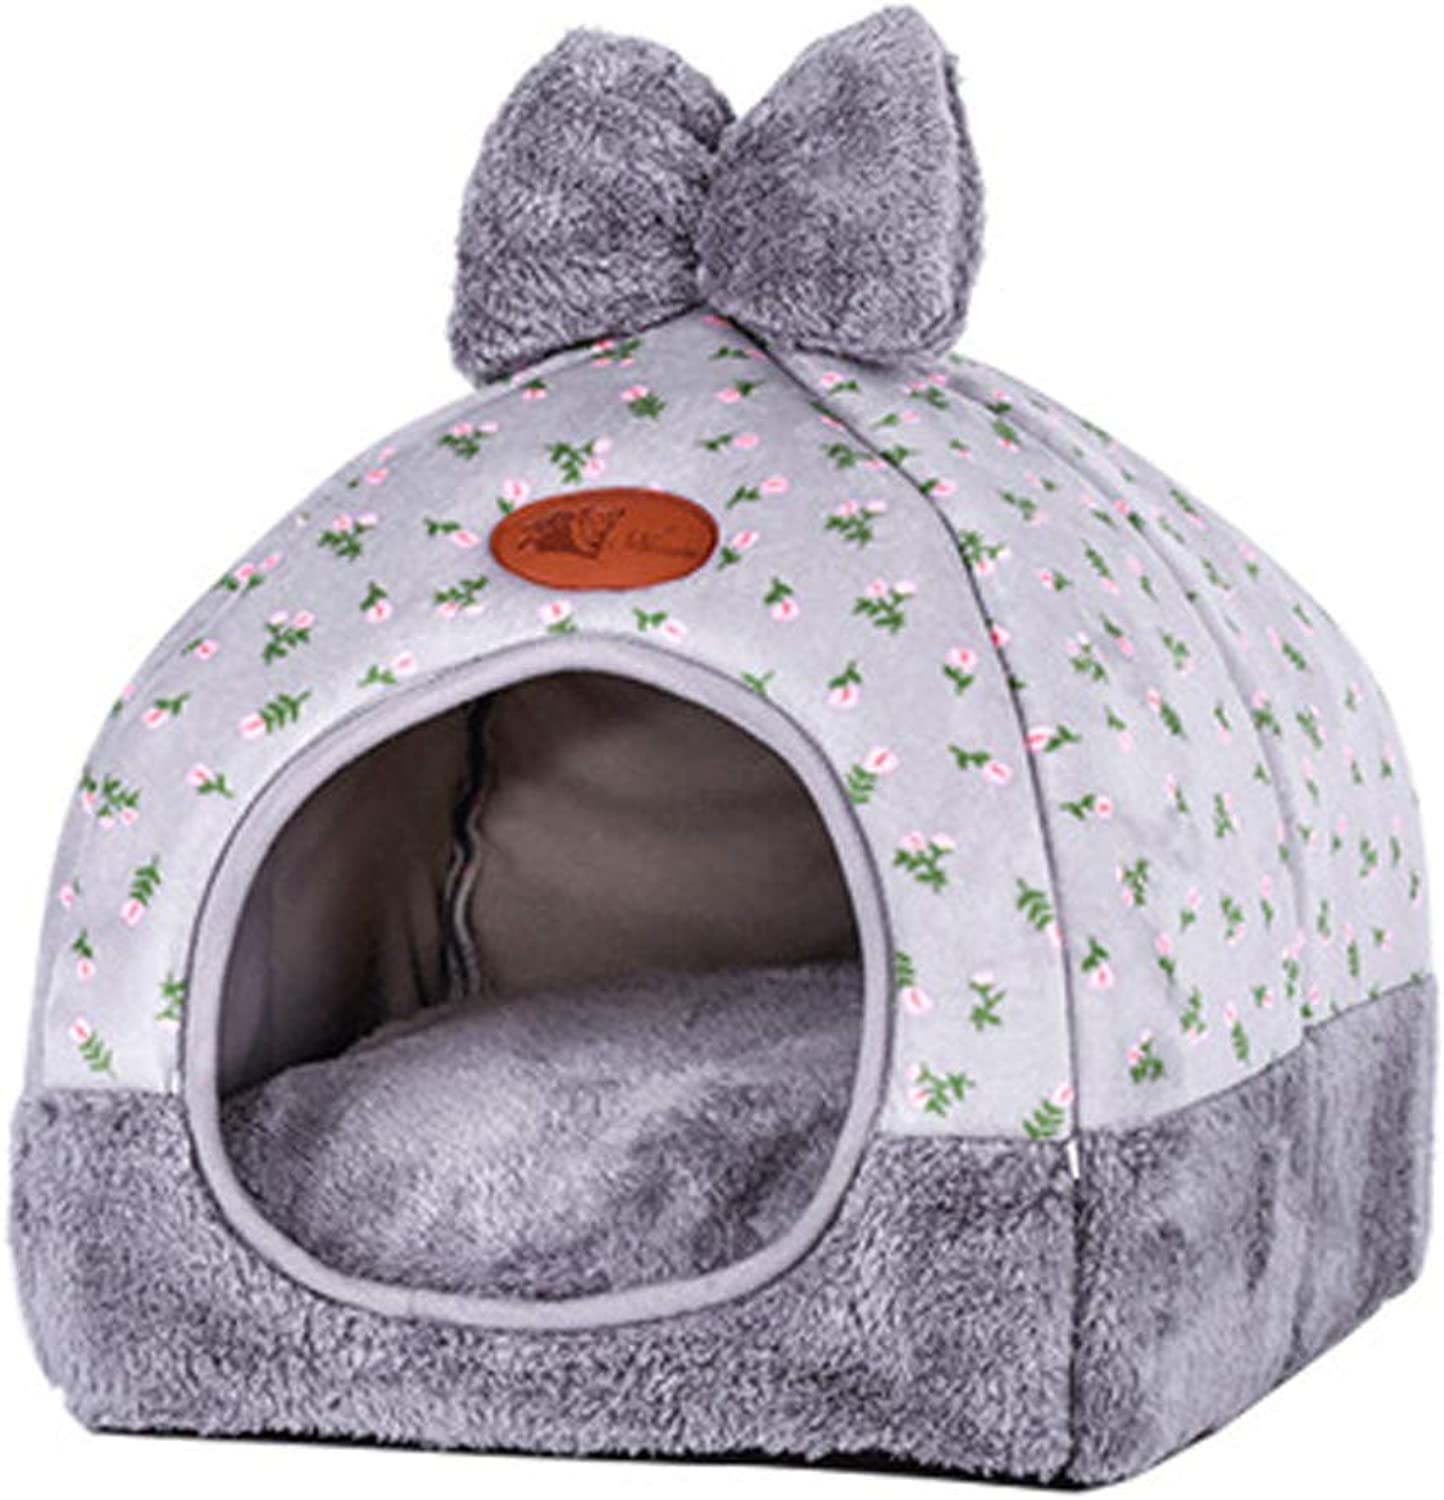 Dog Bed Plush Soft Comfortable Puppy Dog Cat House Washable Removable Foldable Four Seasons